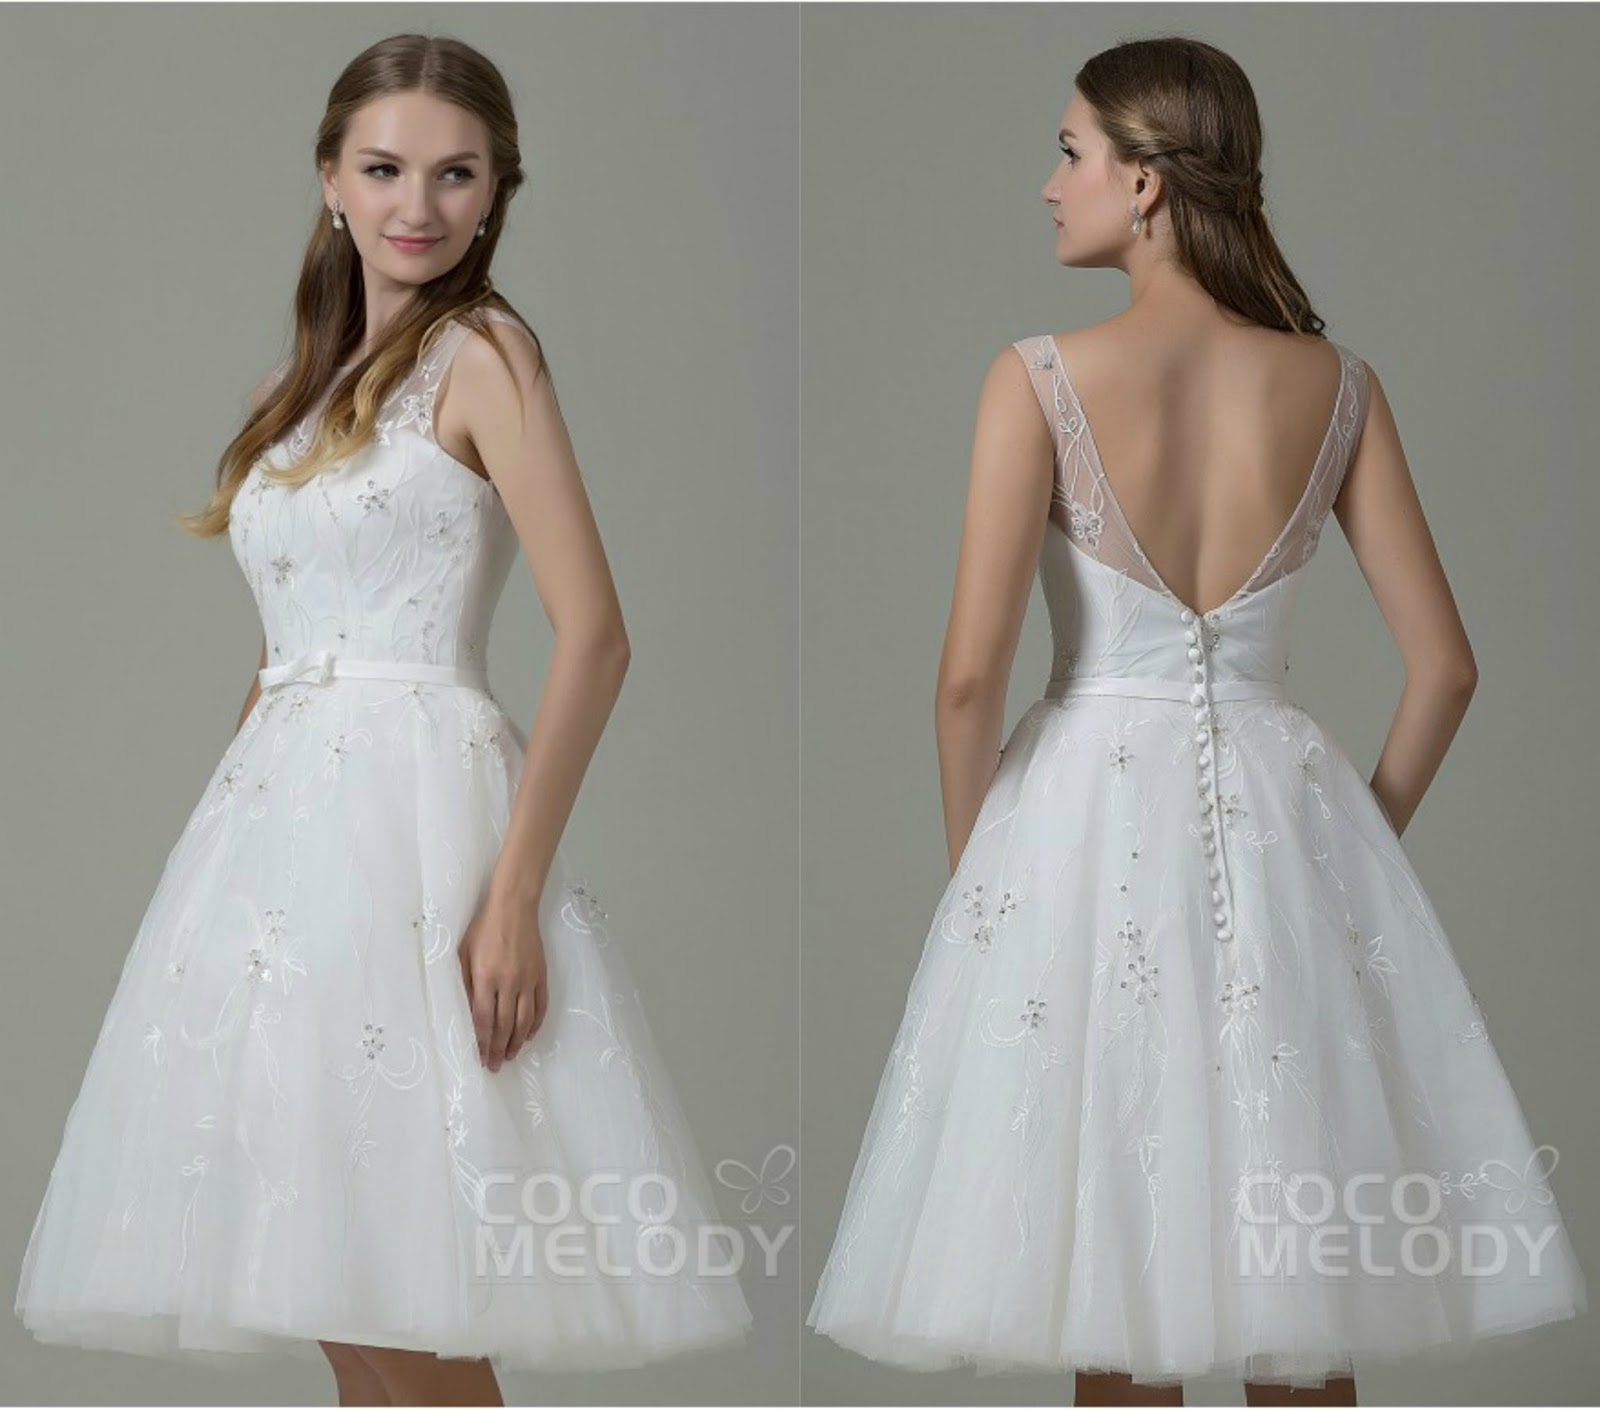 Fashion Illusion Natural Knee Length Tulle Ivory Sleeveless Open Back Wedding Dress with Beading and Embroidery